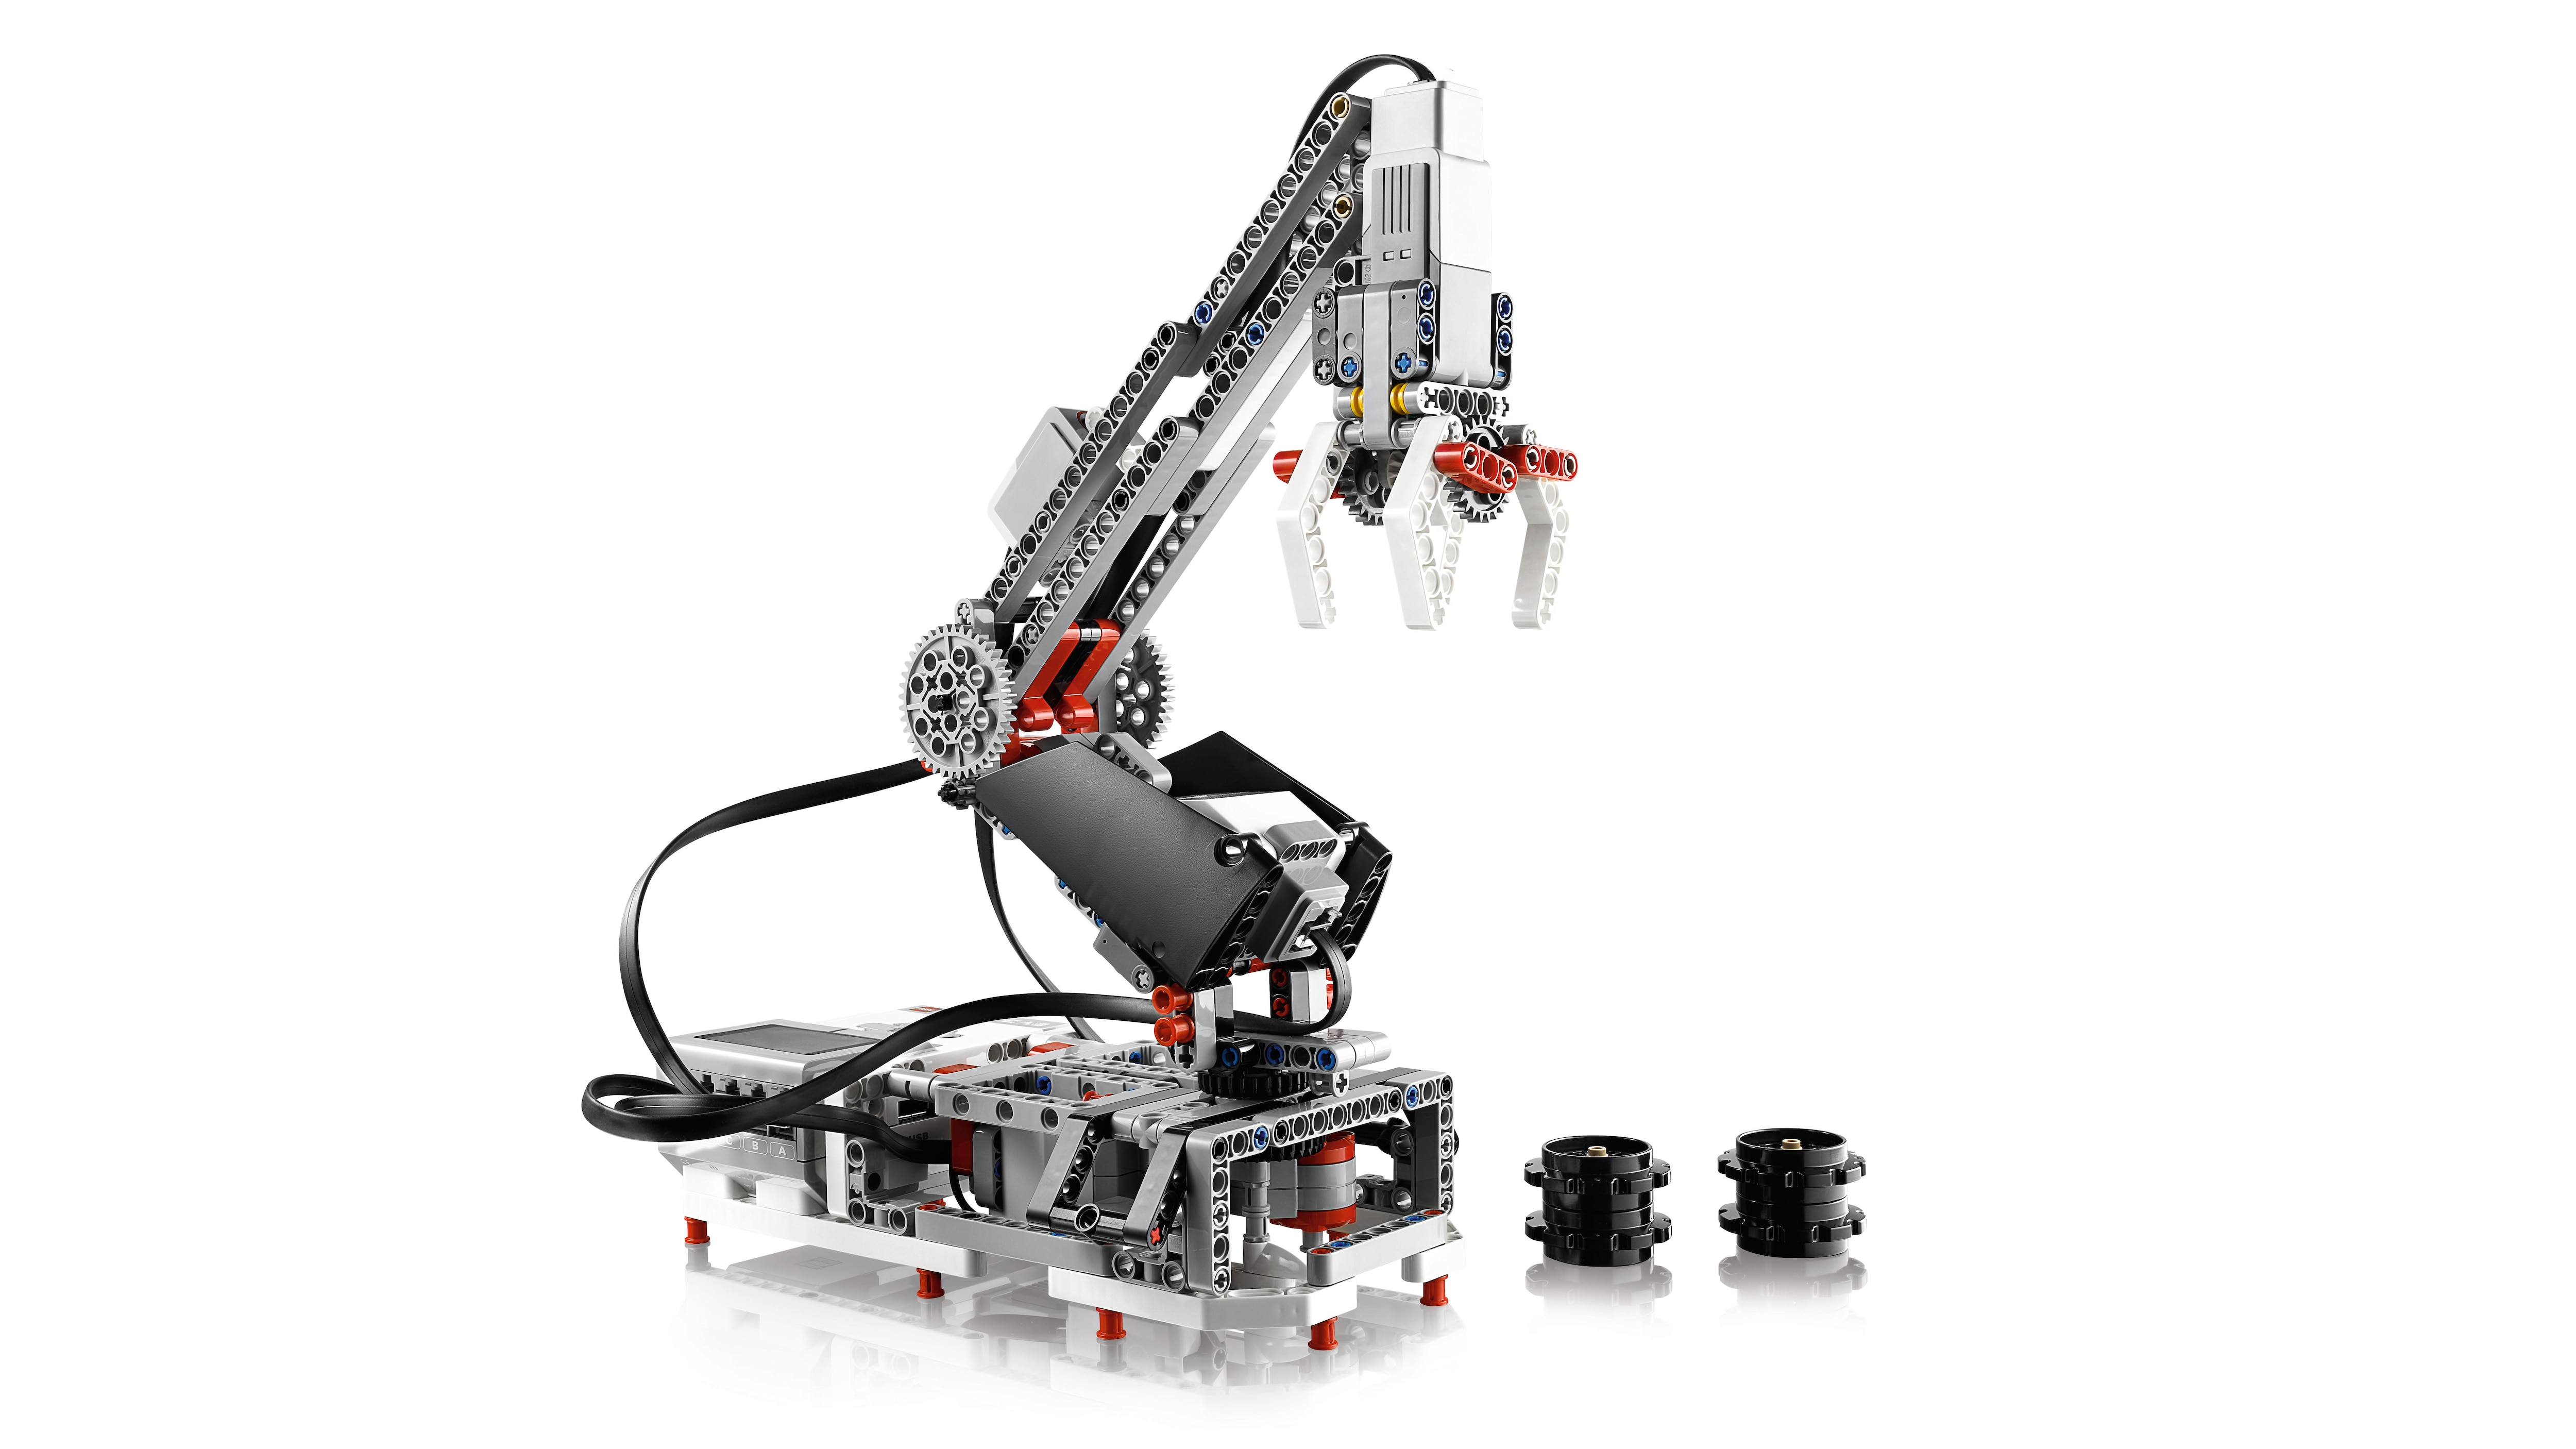 MINDSTORMS EV3 Building instructions – Support